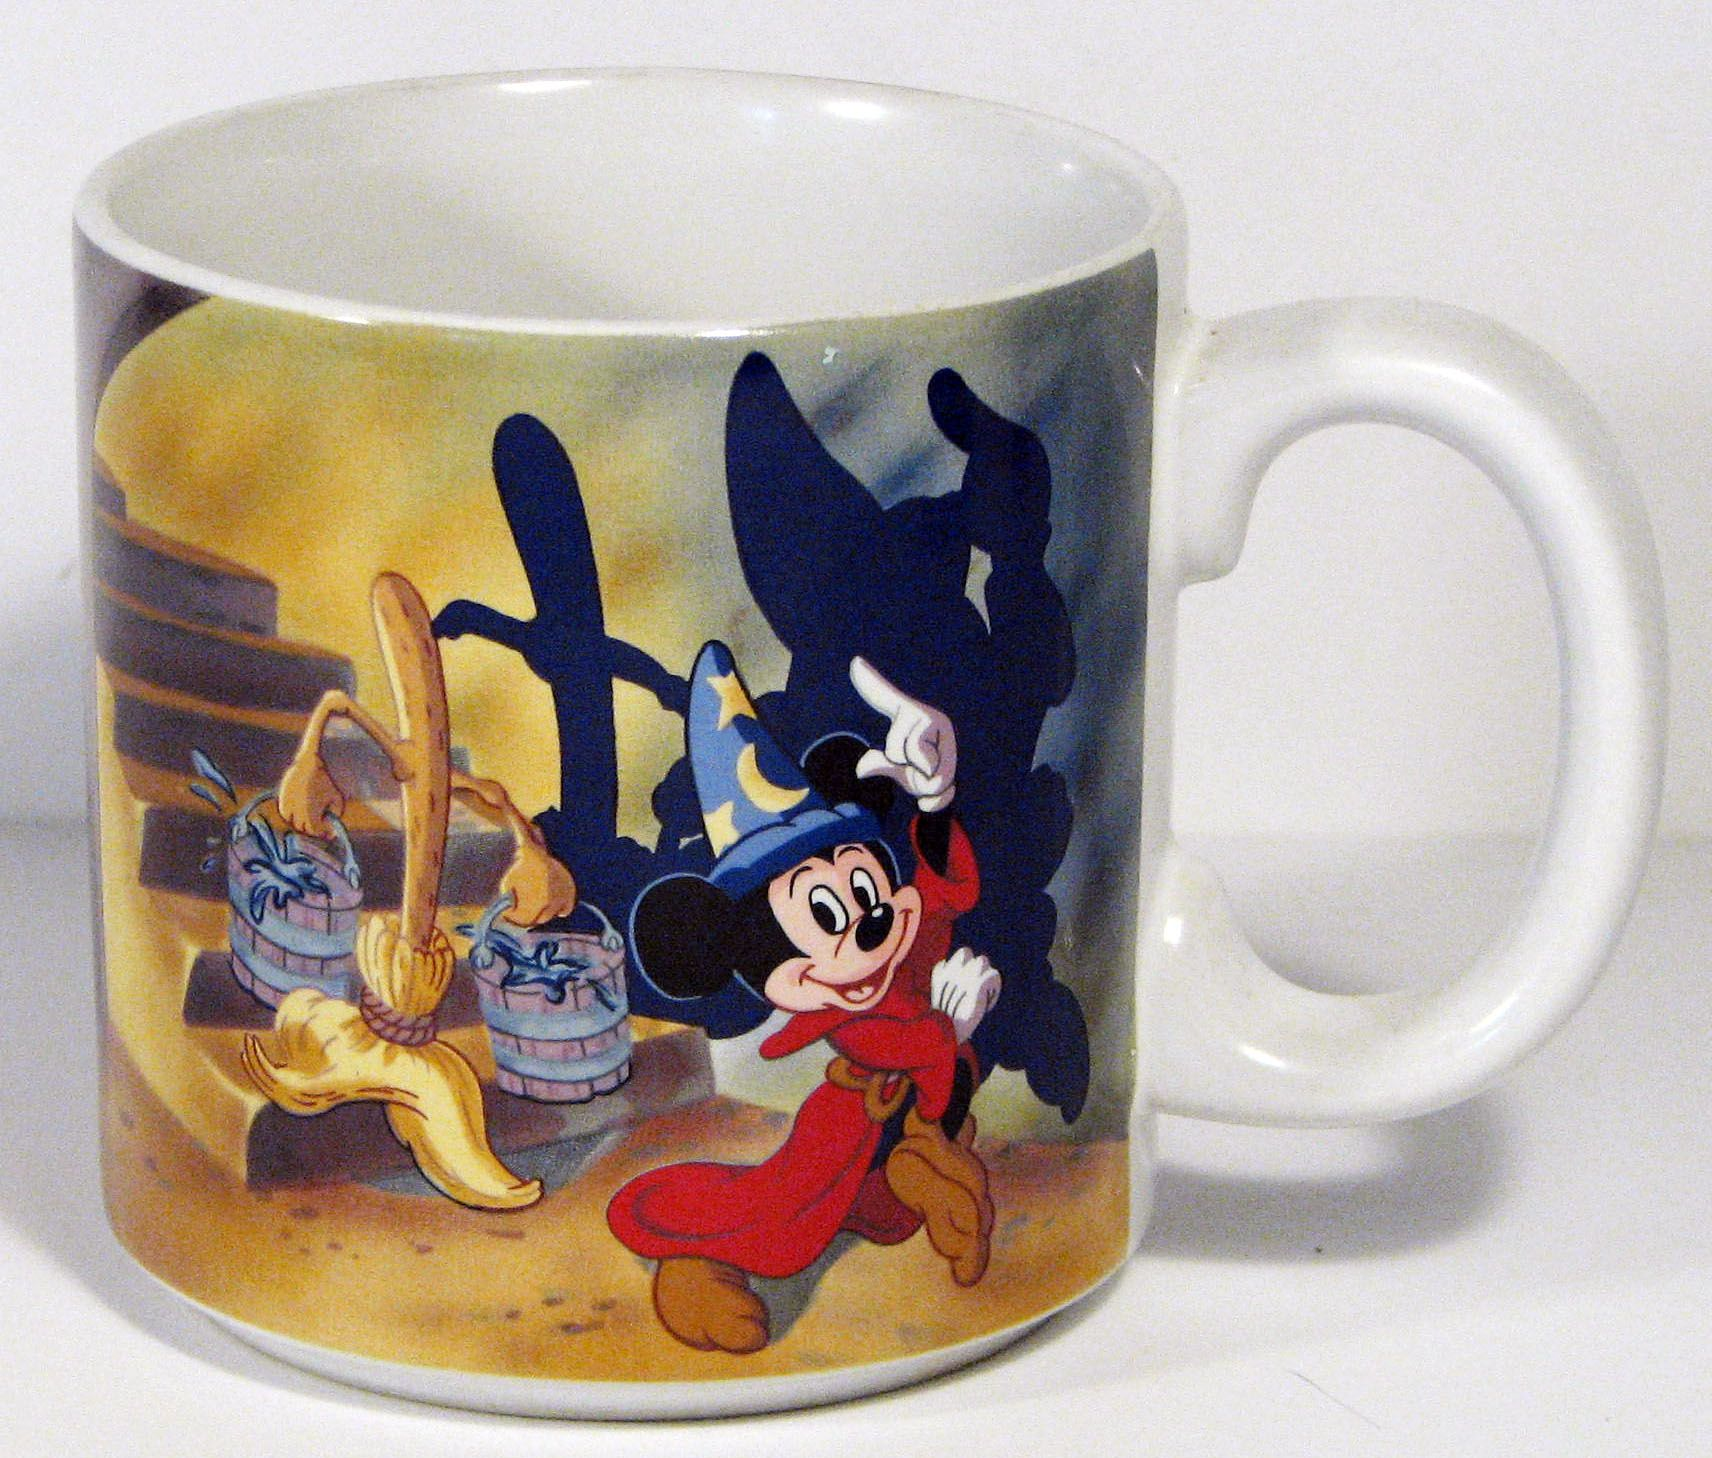 Made In Japan Released In 1990 Ceramic Features Sorcerer Mickey With Dancing Brooms Colors Are Bold With No Chipp Fantasia Disney Walt Disney Mickey Mouse